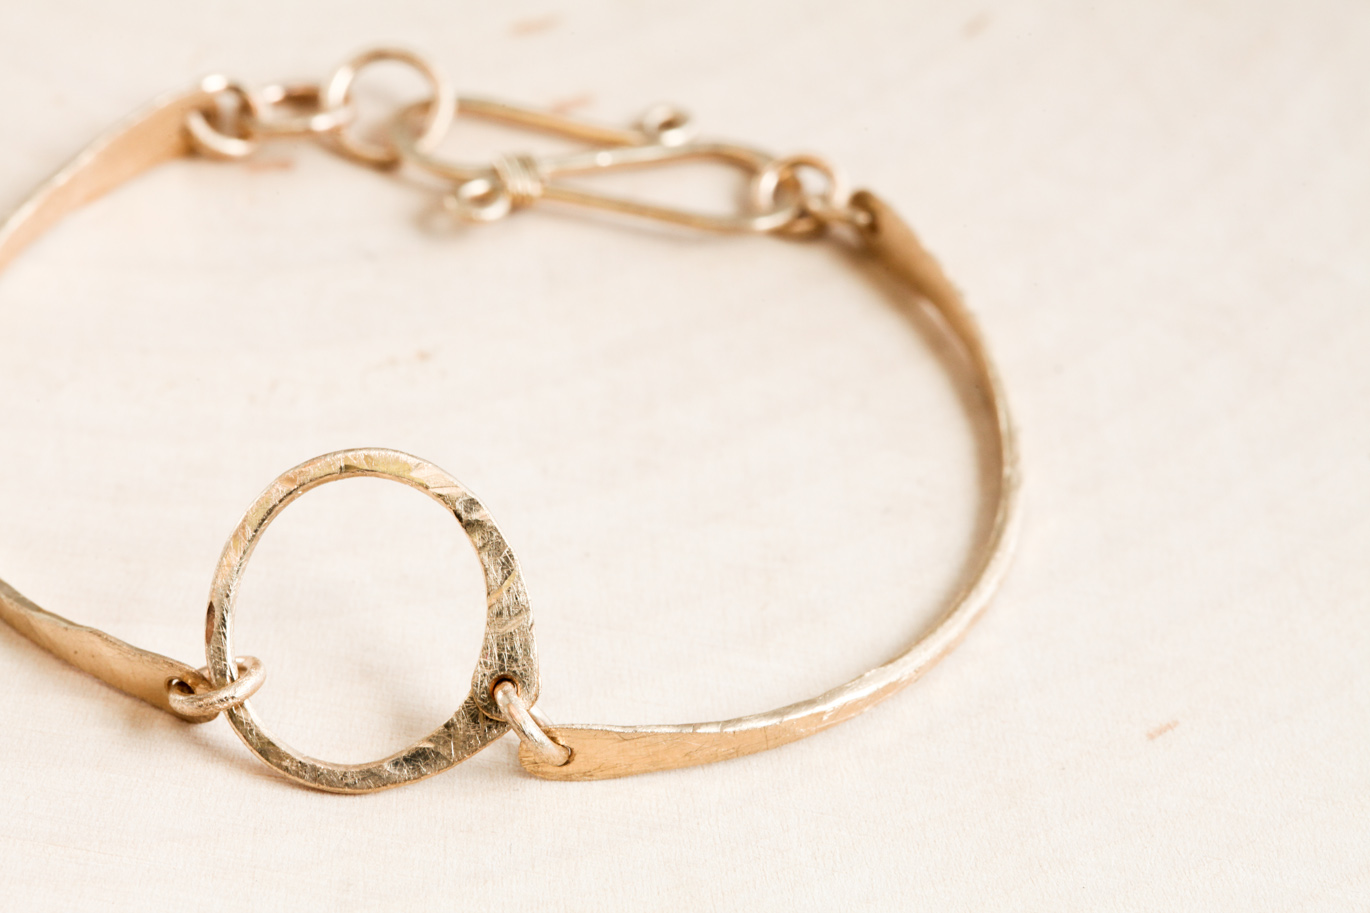 Simple Zen Circle Handmade Small Circle Bracelet Hammered Gold